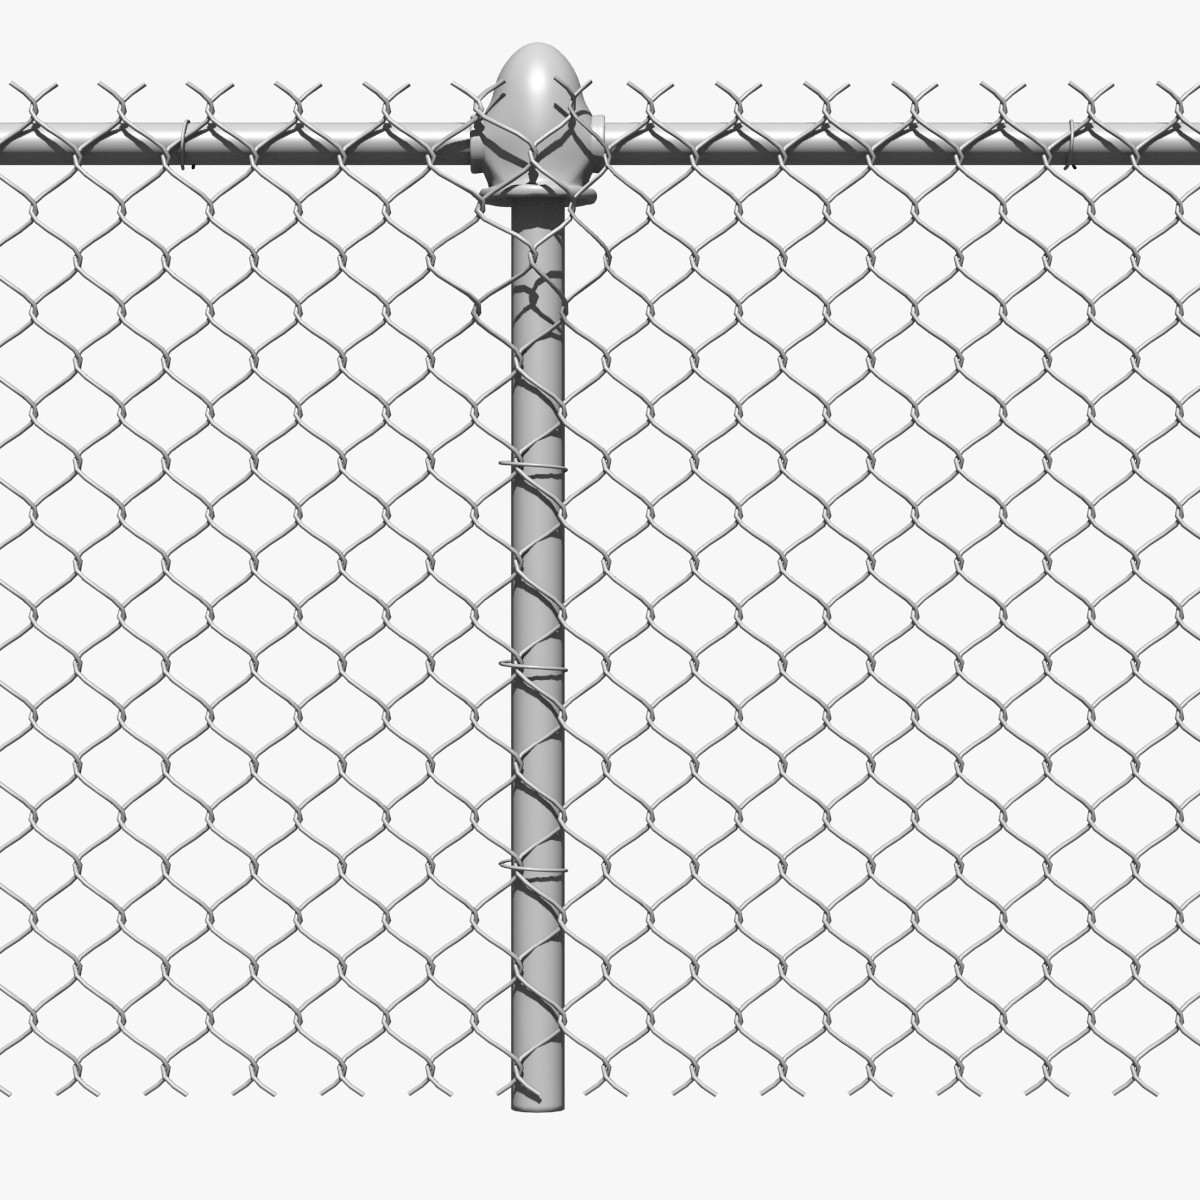 1200x1200 Chain Link Fence Texture Seamless